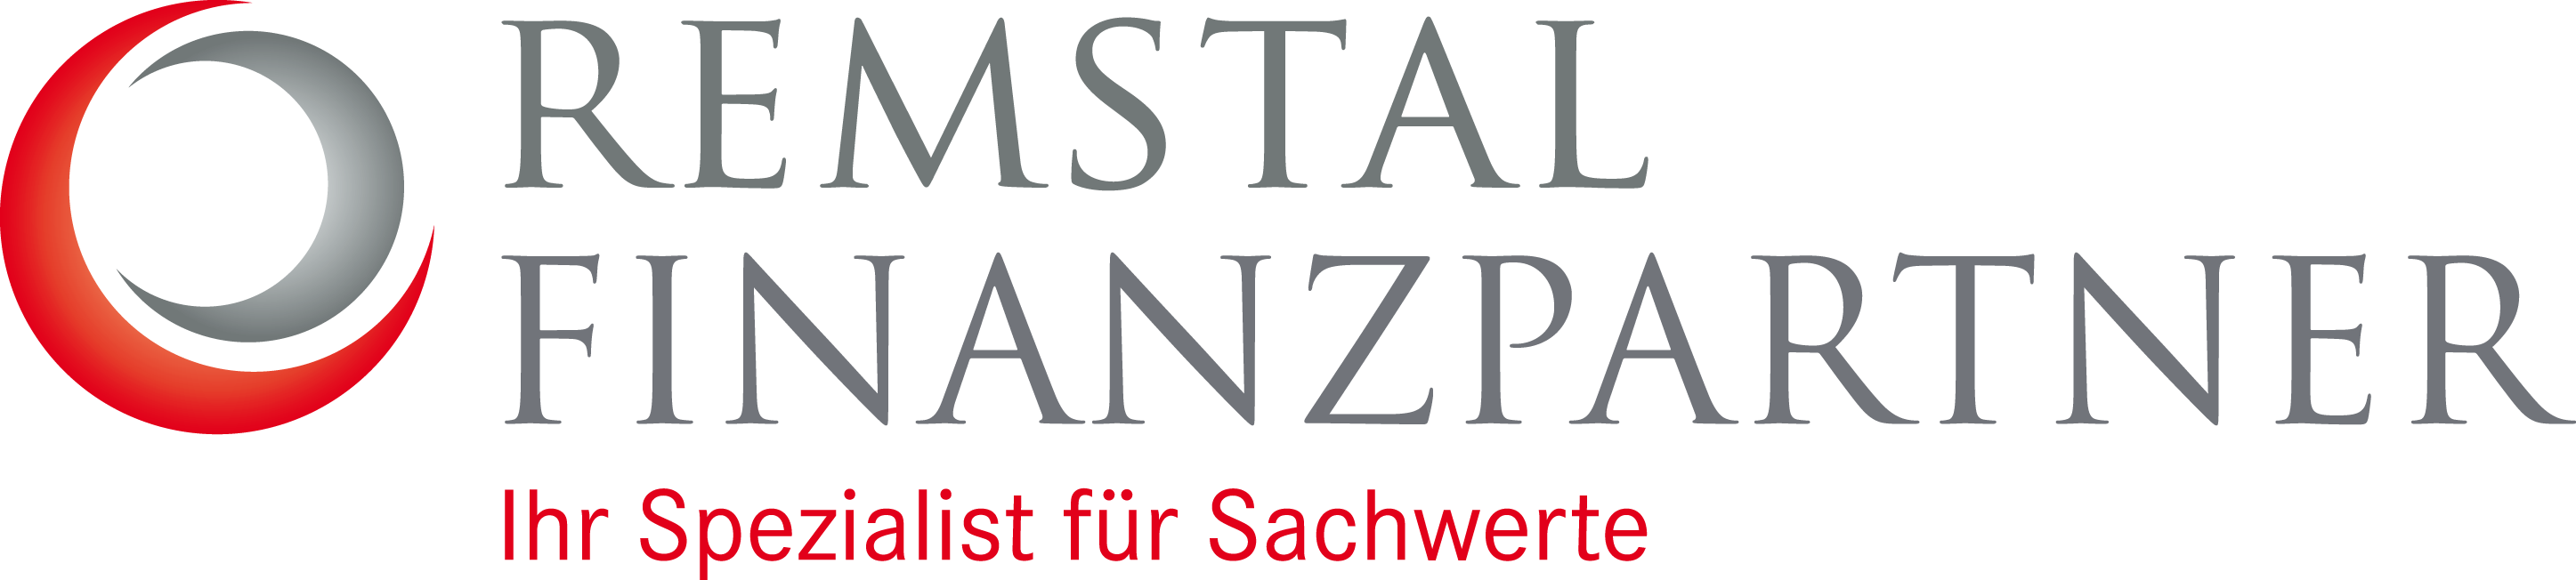 Remstal Finanzpartner